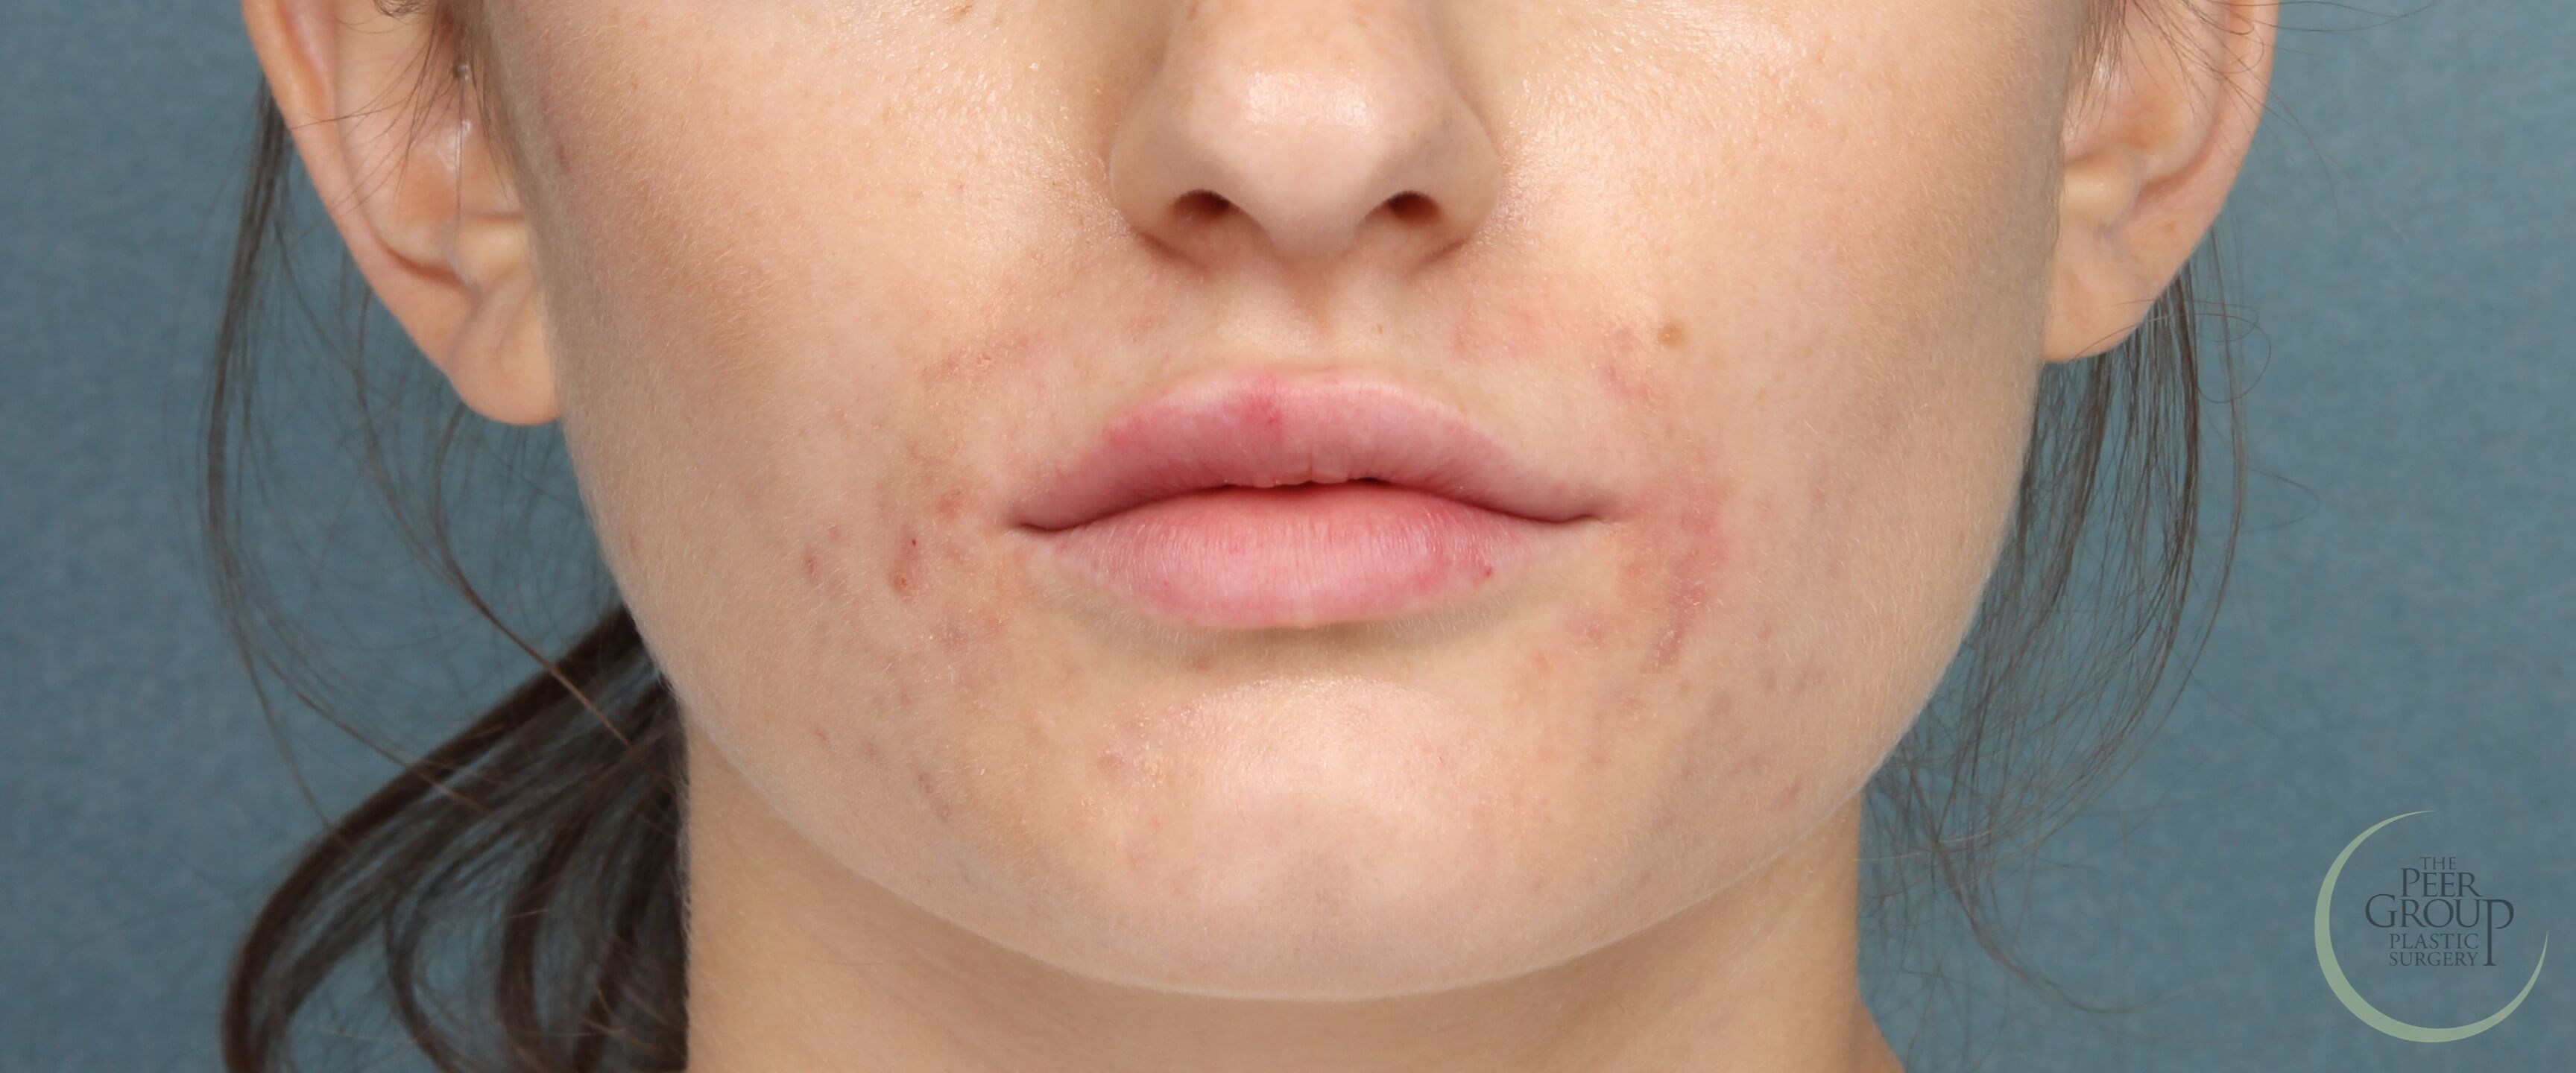 Fuller Lips with Juvederm Immediately After Juvederm